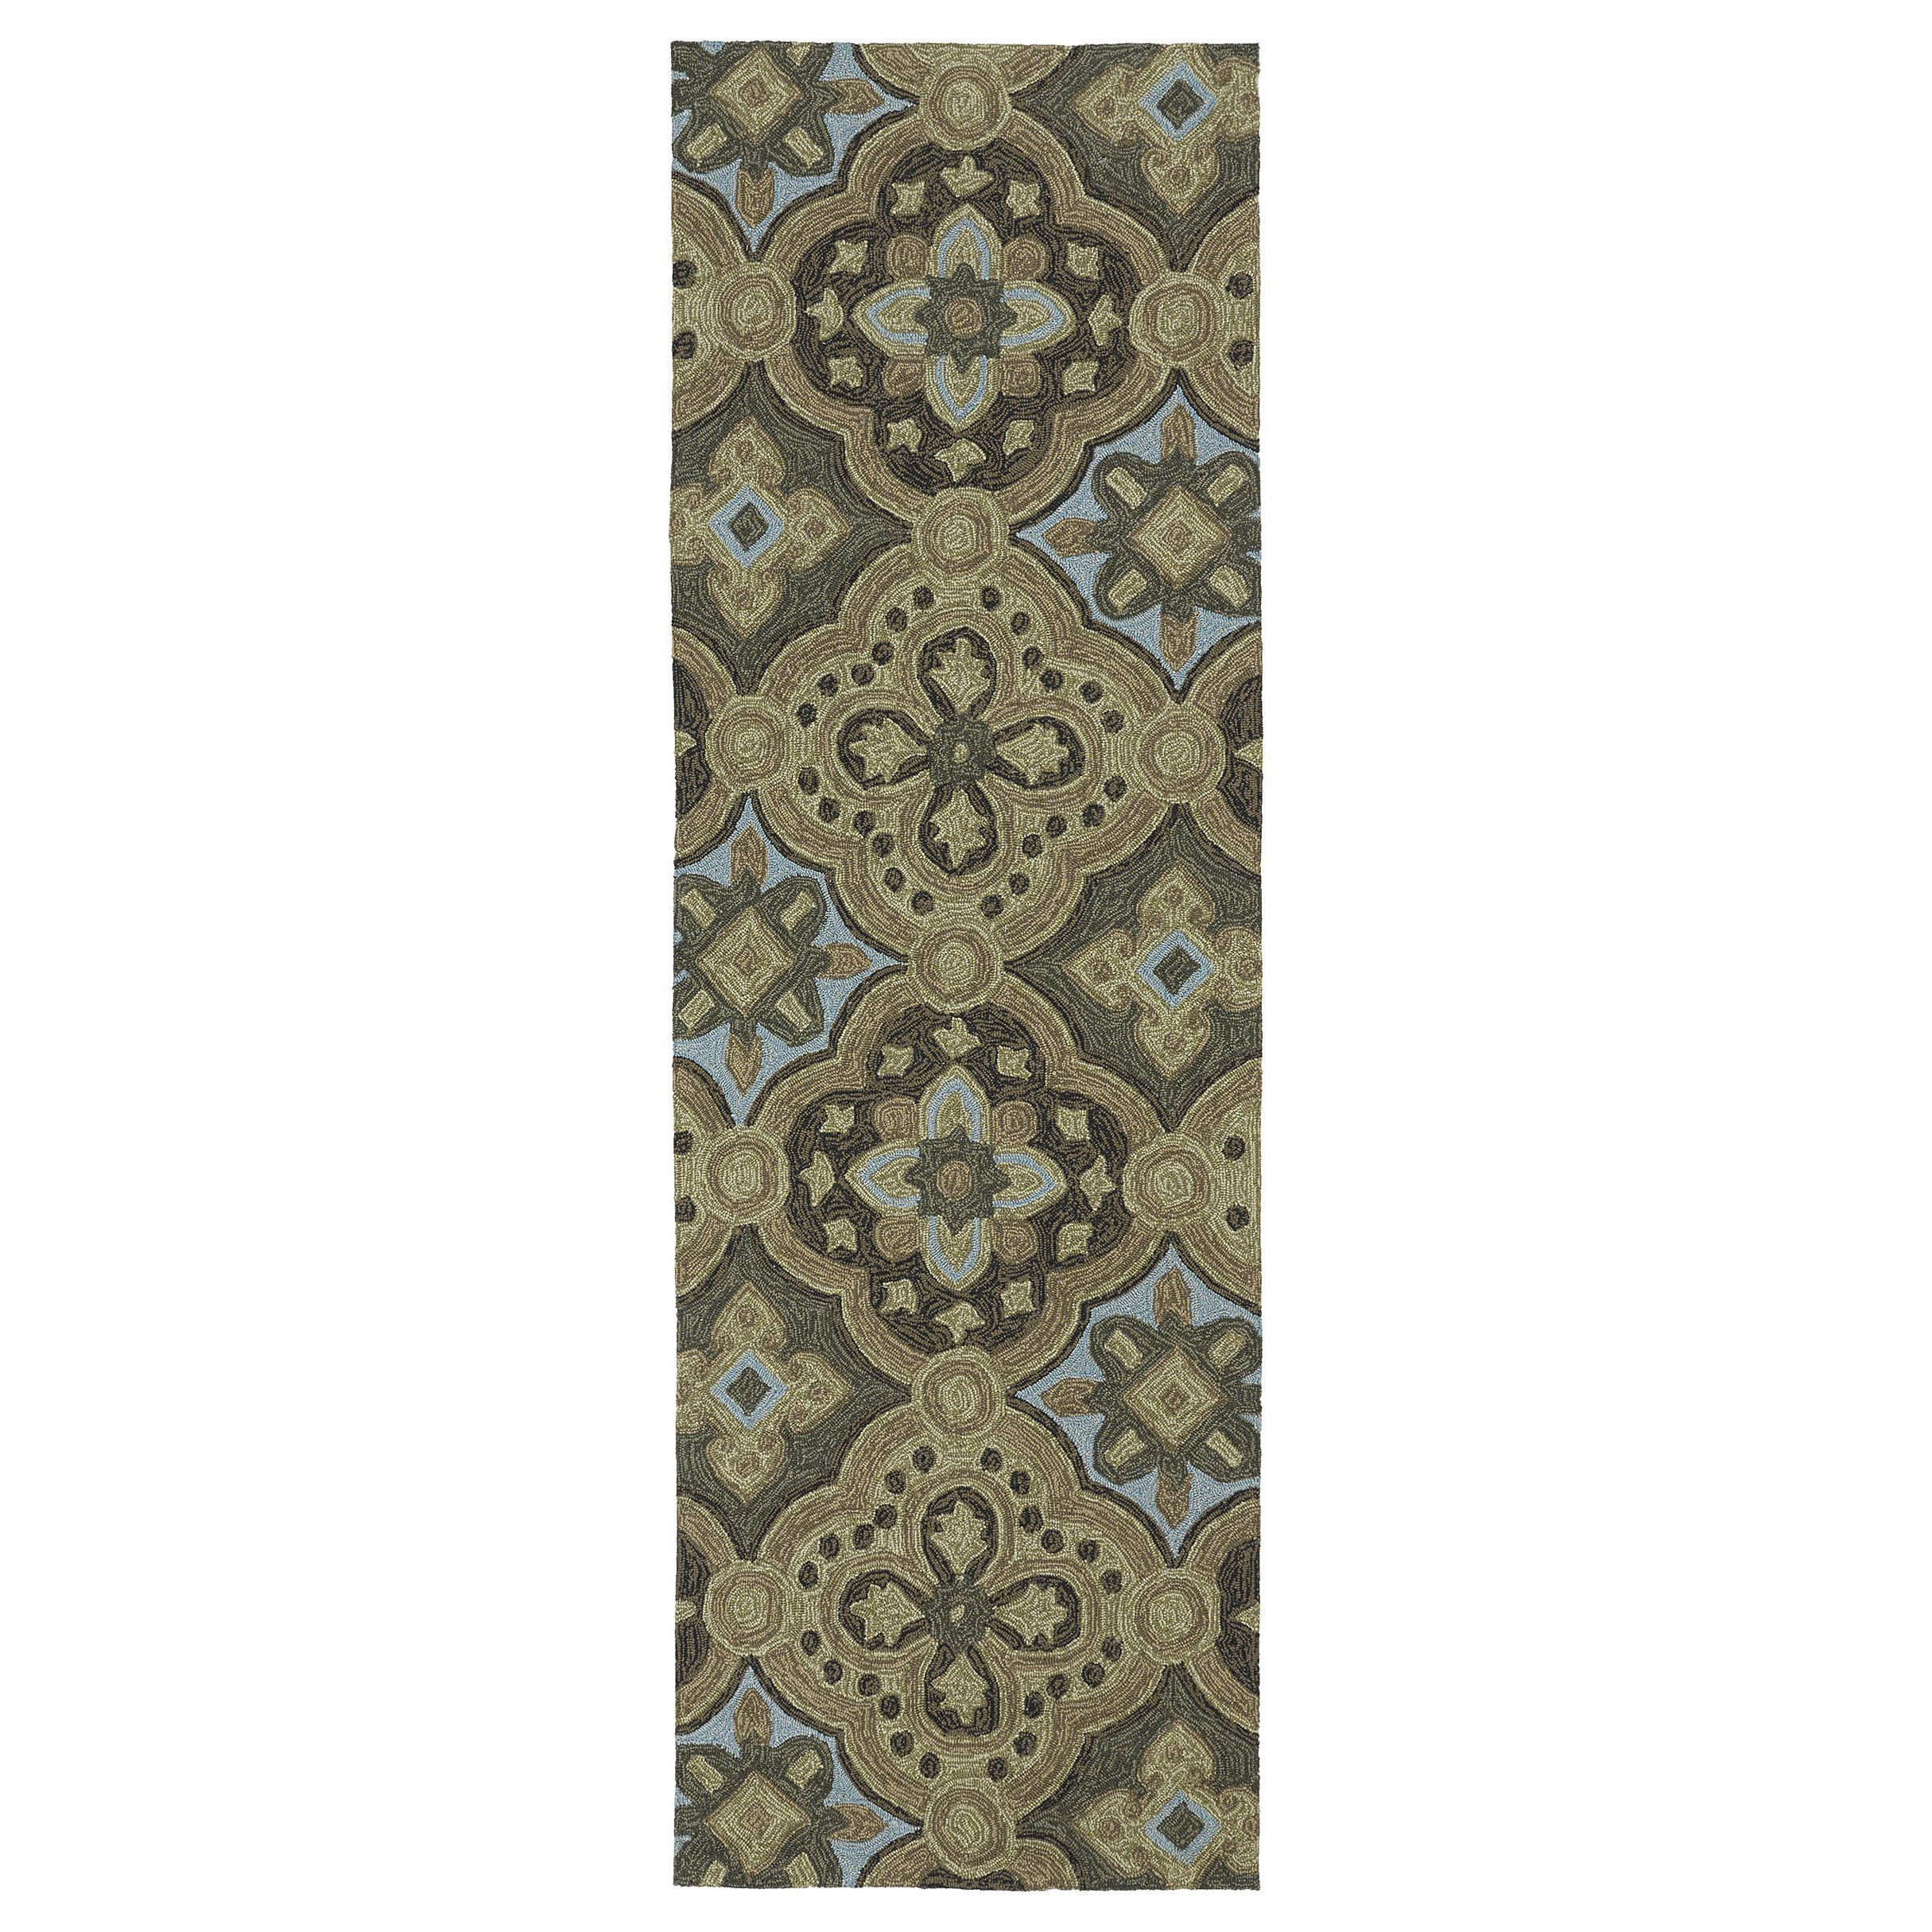 Bombay Home Seaside Chocolate Panel Indoor Outdoor Rug 2 6 x 8 0